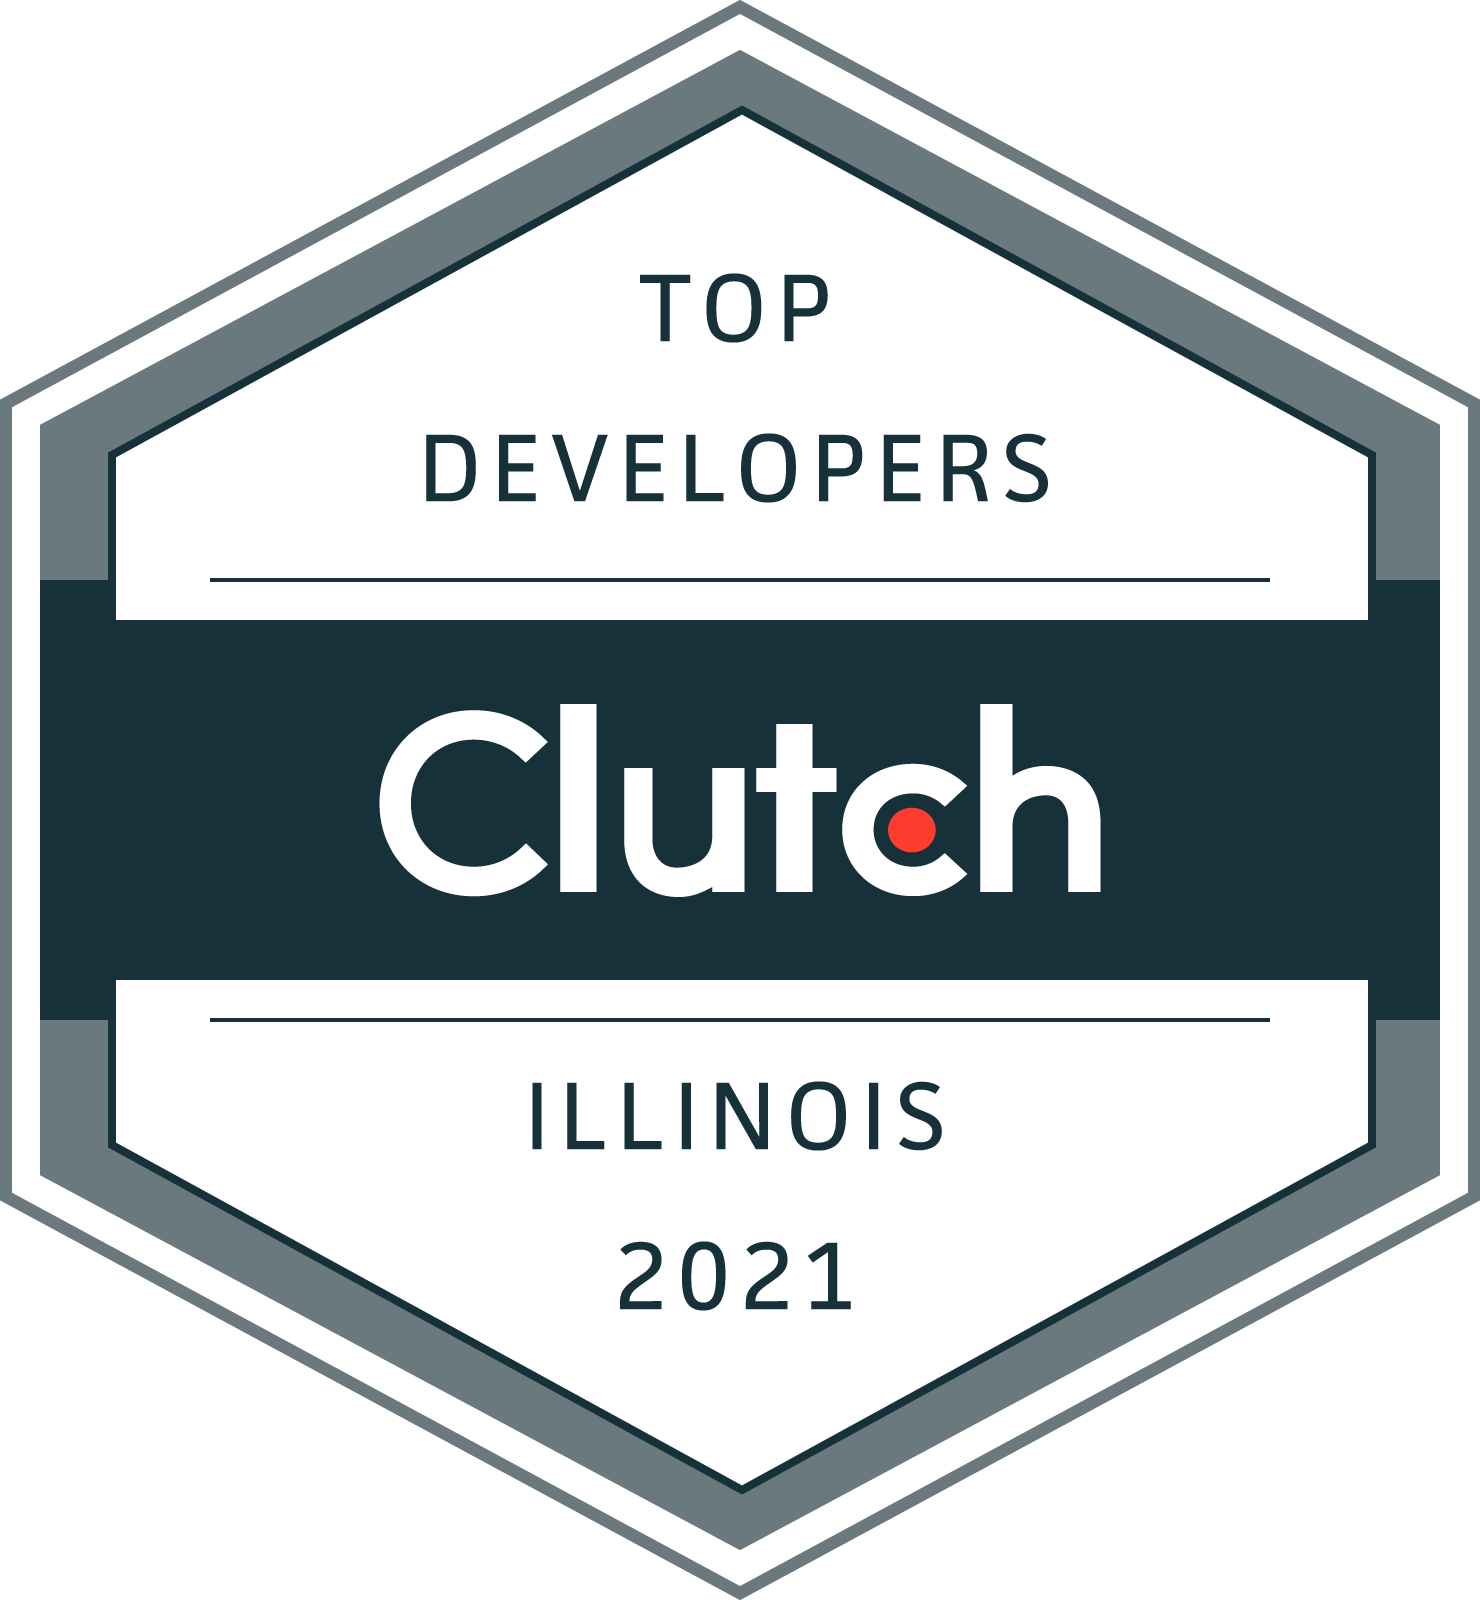 """We are a team of professional web designers, focused to deliver innovative, creative and scalable websites with outstanding user experience. We serve different industries including real estate, IT, healthcare, financial services, education and more. This year, we have been recognized by Clutch as one of the top performing agencies in Illinois. Clutch is a B2B ratings and reviews platform based in Washington, DC. They evaluate technology service and solutions companies based on the quality of work, thought leadership, and client reviews. Our team works six days a week, just one of the many reasons why we believe we deserve recognition like this. Our CEO quoted: """"It is a pleasure to receive such an award from Clutch.co as it's a valuable platform to get verified testimonials."""""""